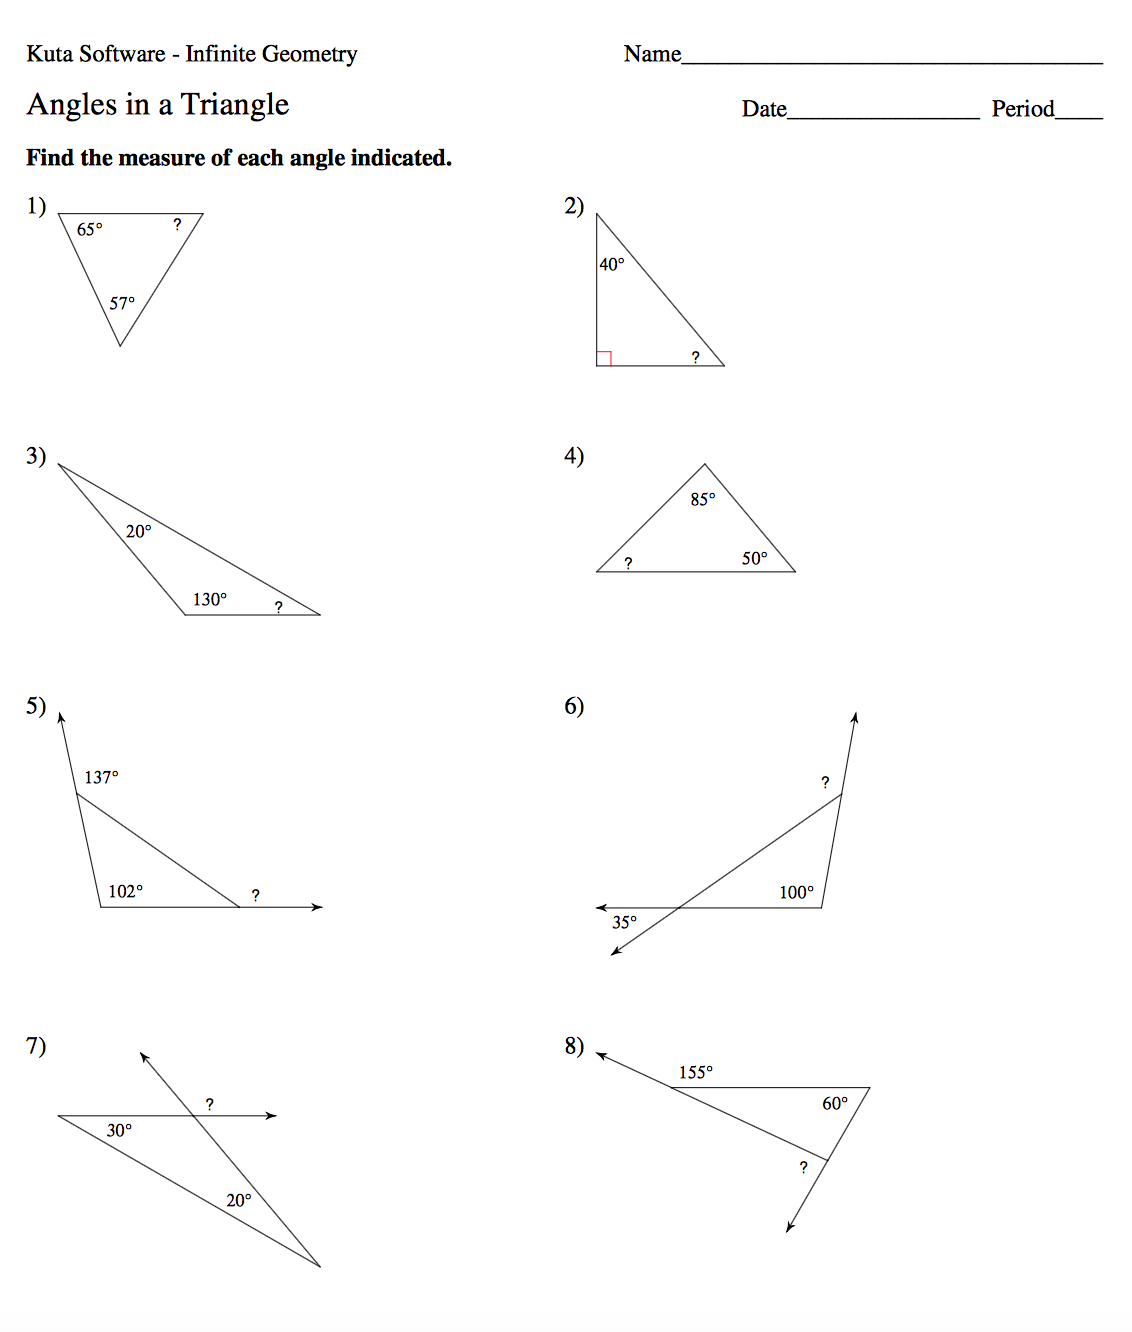 Geometry - Mrs. Murk's Math Class alphabet worksheets, education, free worksheets, learning, math worksheets, and worksheets Triangle Congruence Worksheet With Answers 1332 x 1132